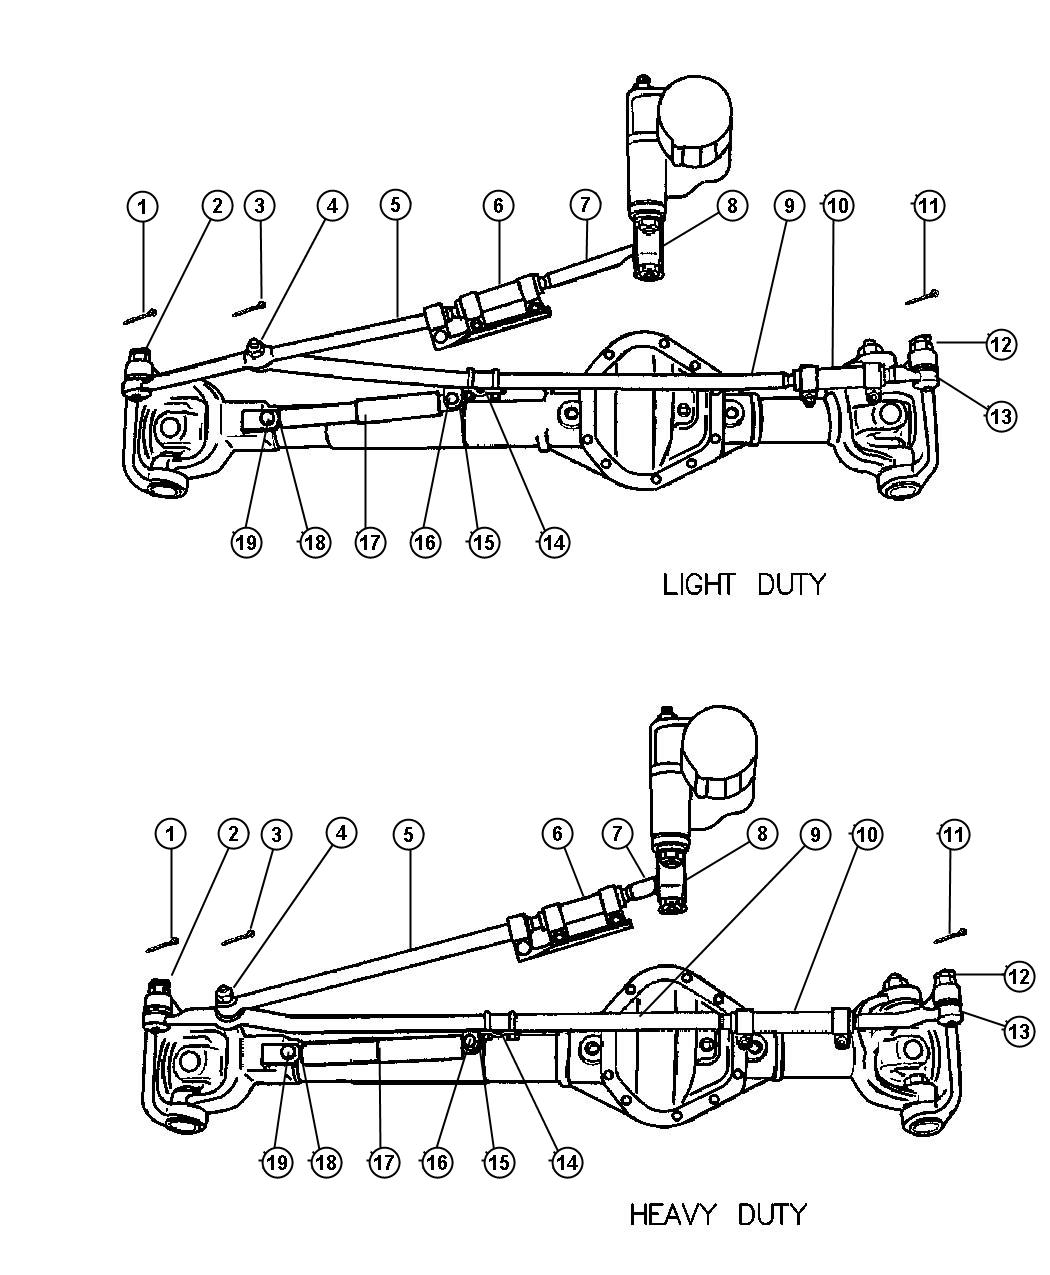 dodge ram front suspension diagram 1999 ford f350 ignition wiring 1997 vw jetta imageresizertool com